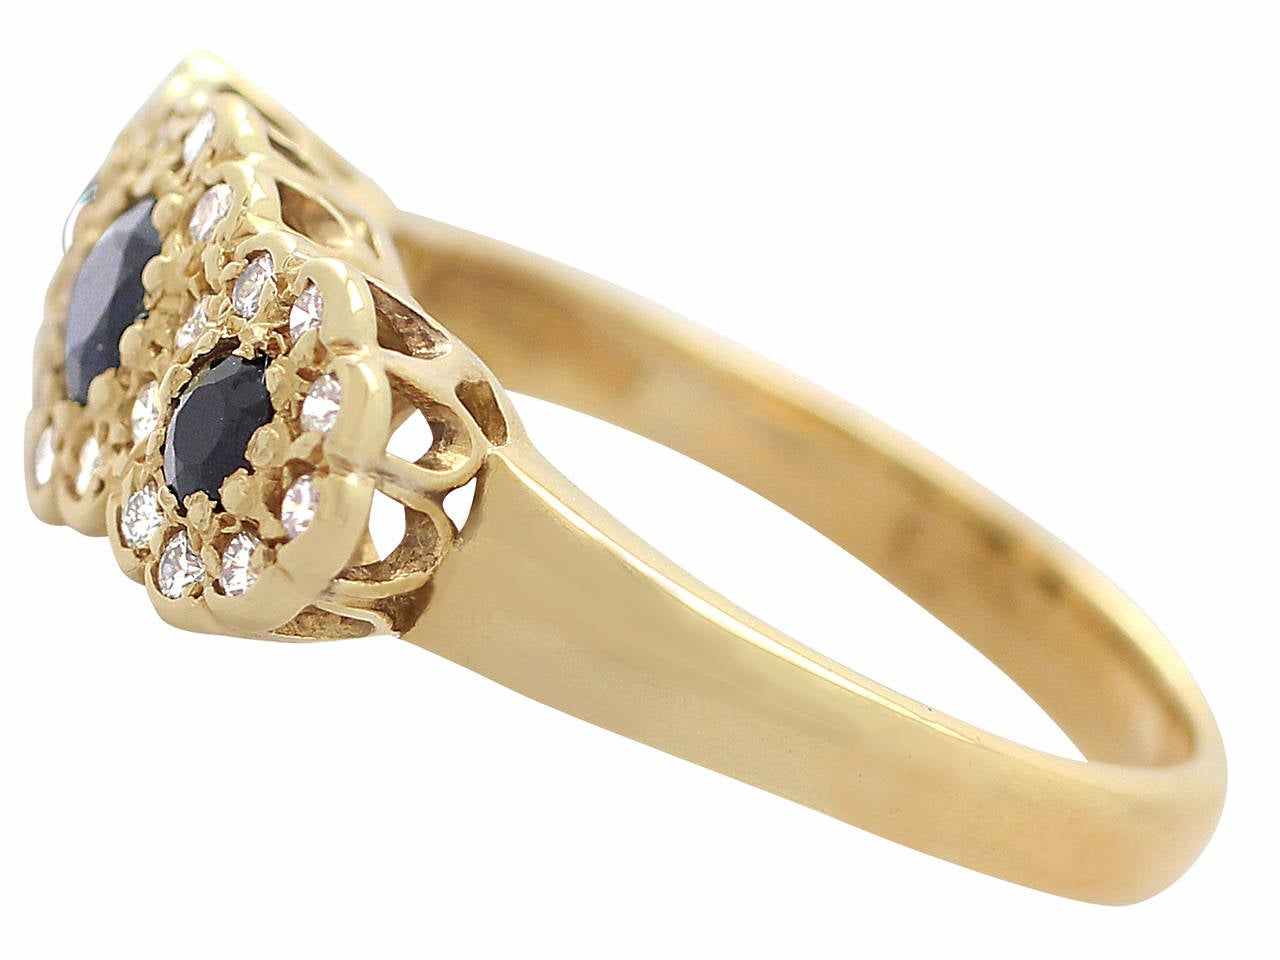 1980s Sapphire & Diamond Yellow Gold Cocktail Ring In Excellent Condition For Sale In Jesmond, Newcastle Upon Tyne